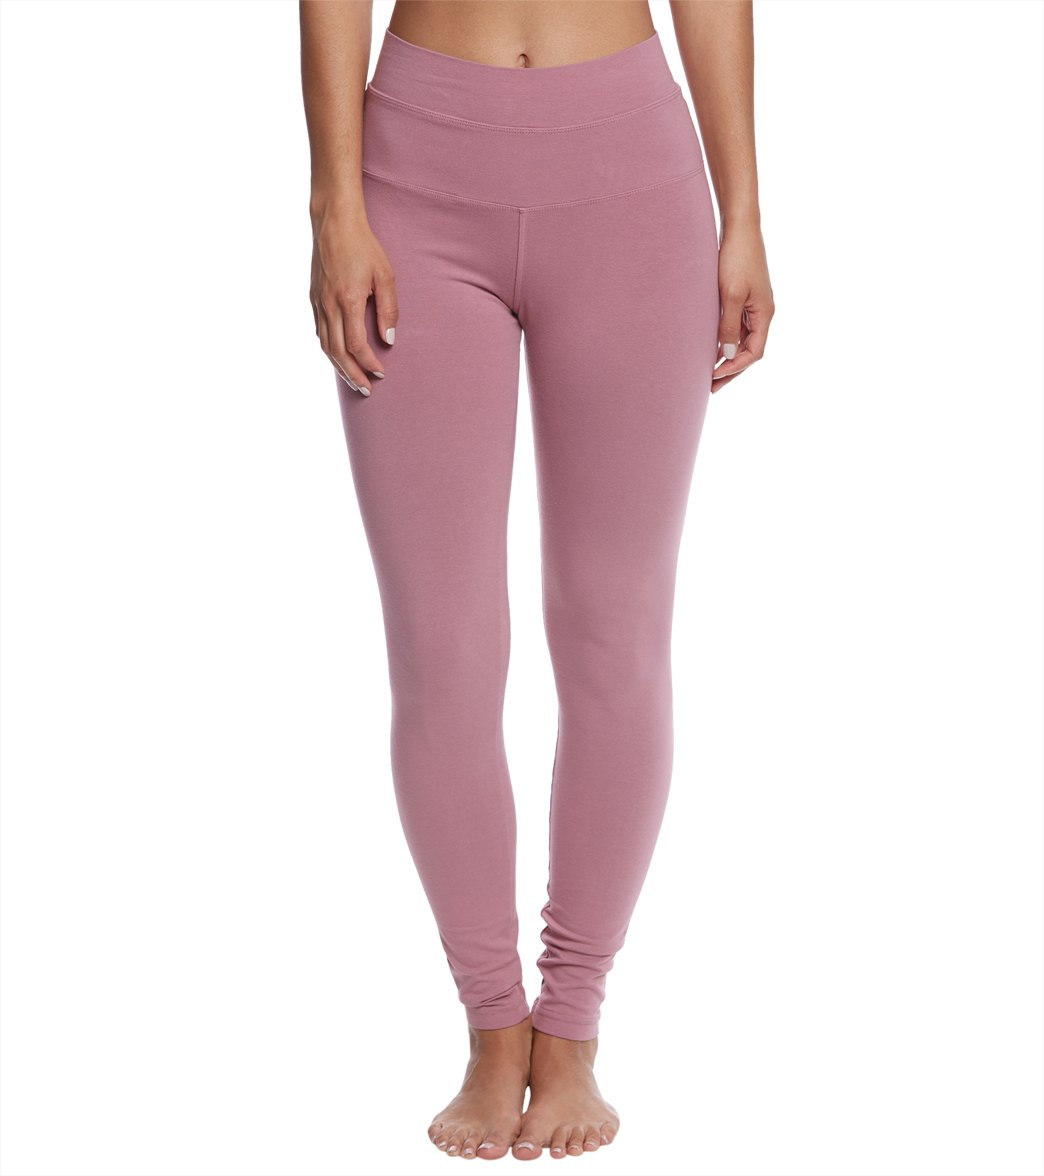 Hard Tail High Waisted Cotton Ankle Yoga Leggings - Dusty Rose